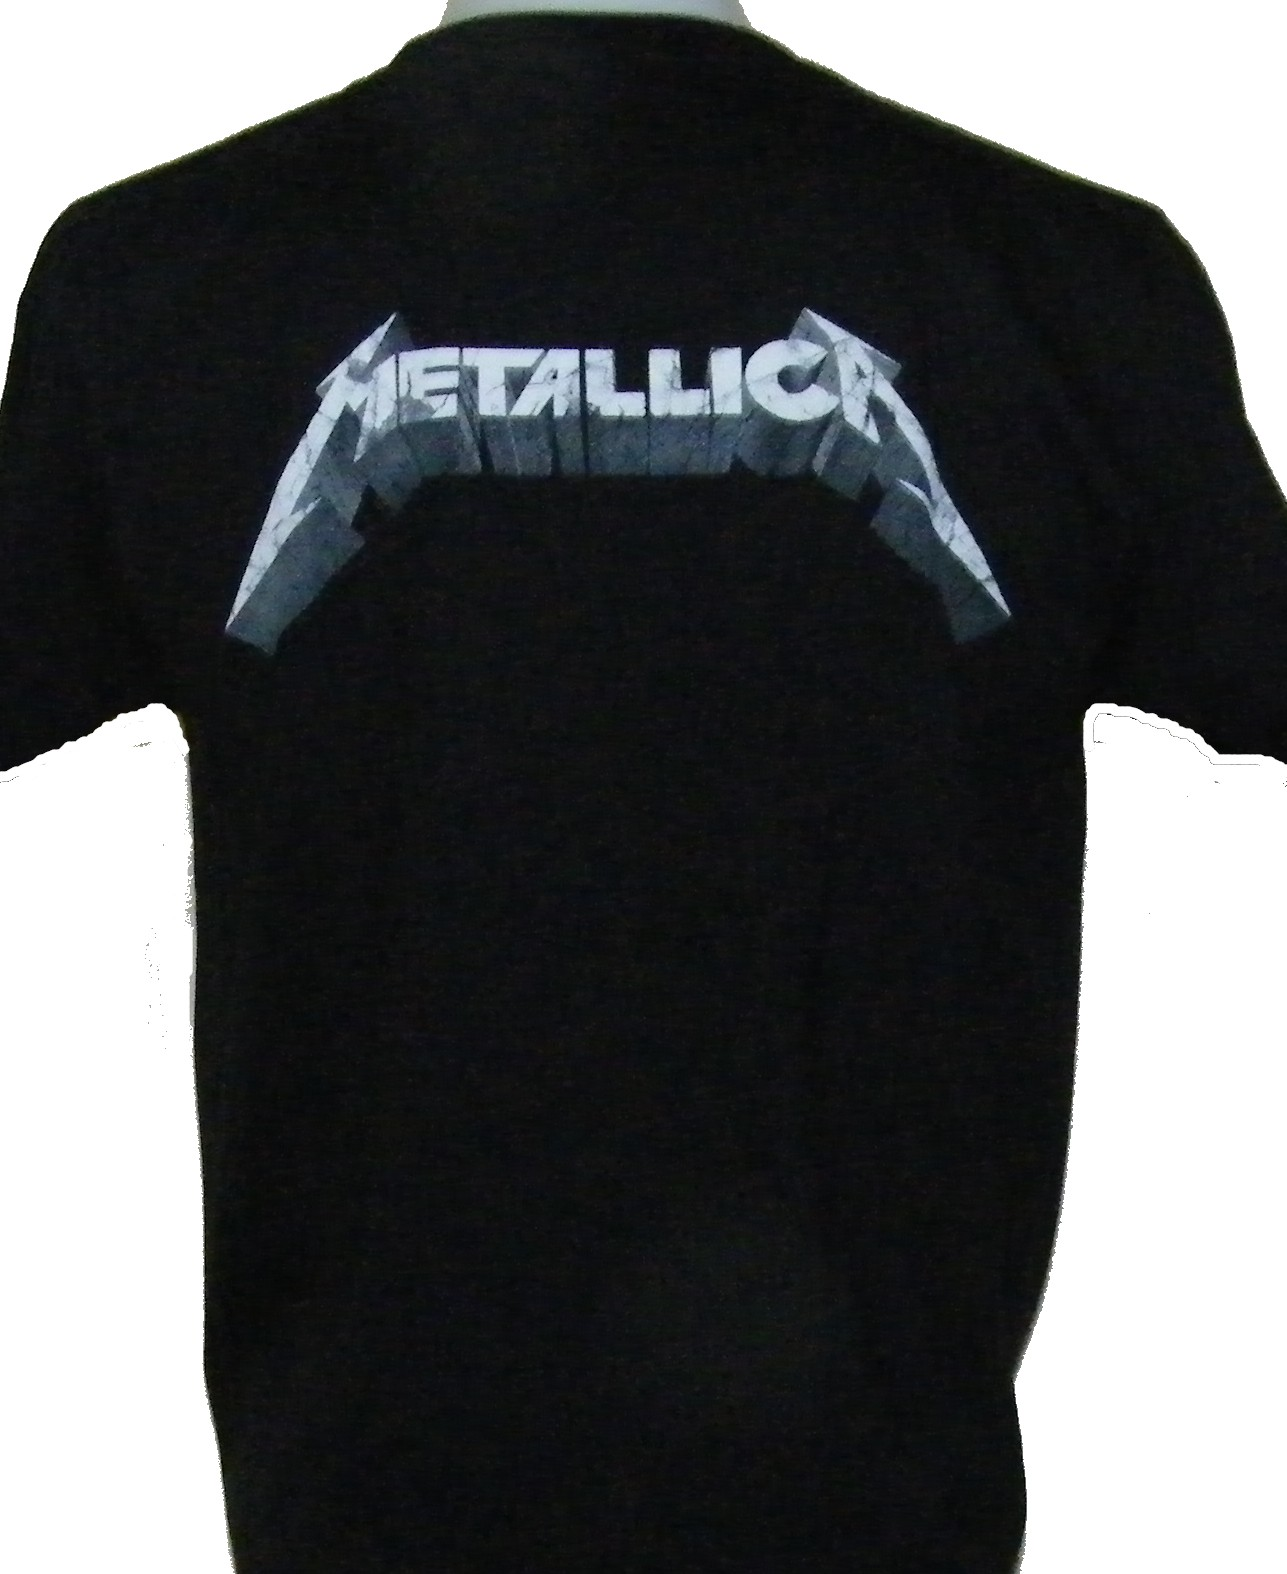 metallica t shirt master of puppets size xl roxxbkk. Black Bedroom Furniture Sets. Home Design Ideas